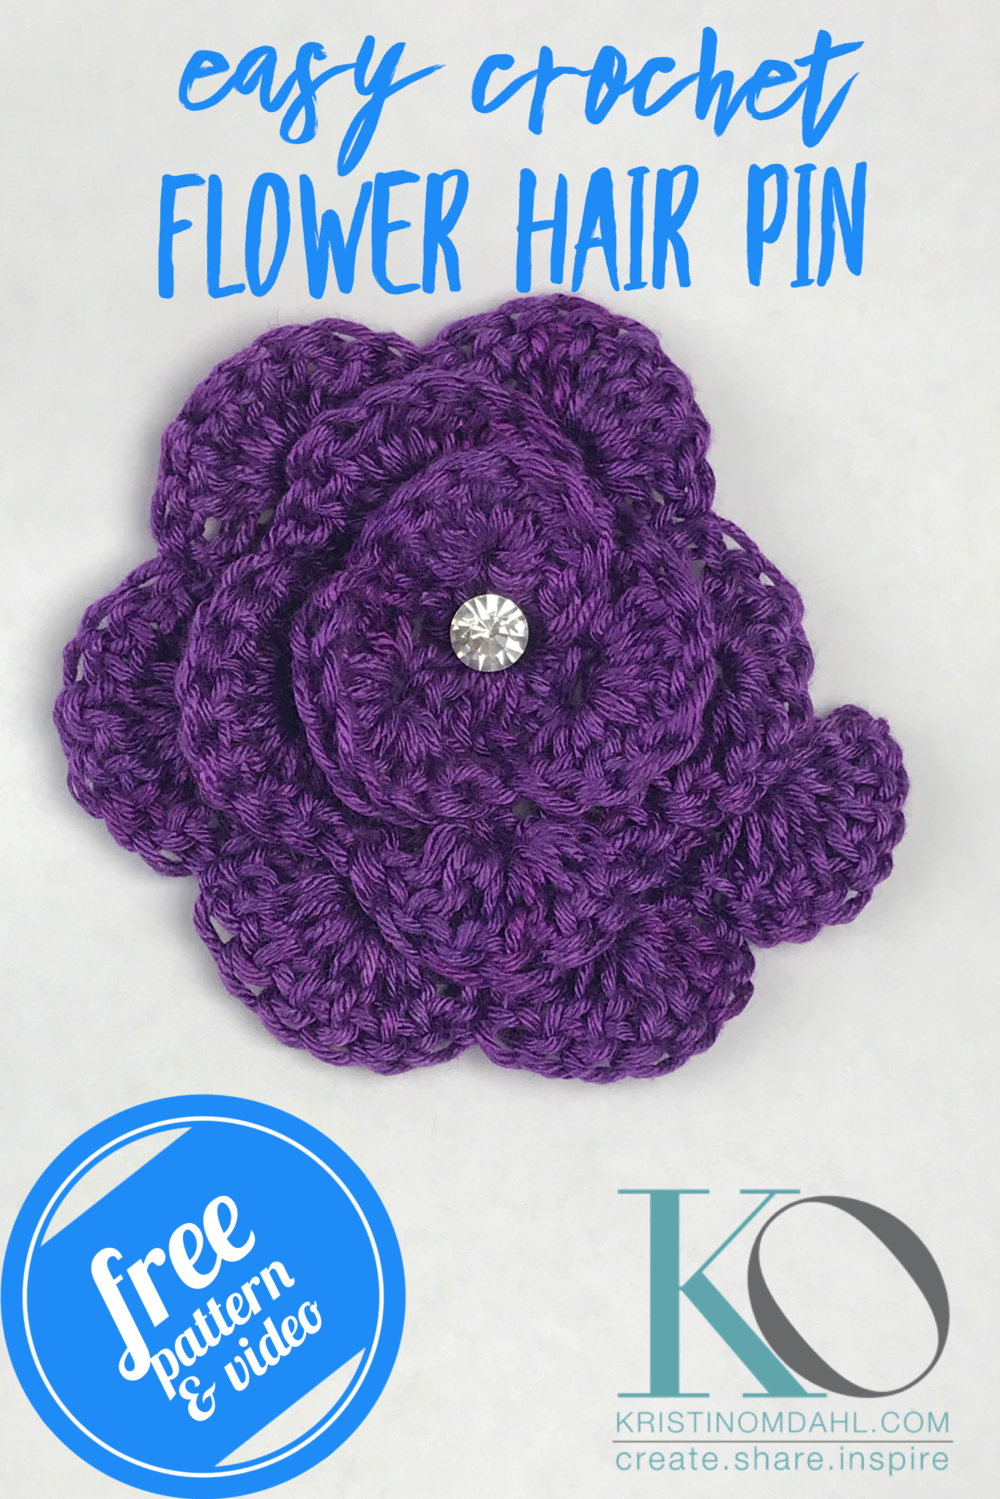 How To Crochet Flower Hair Pin Step By Step For Beginners Free